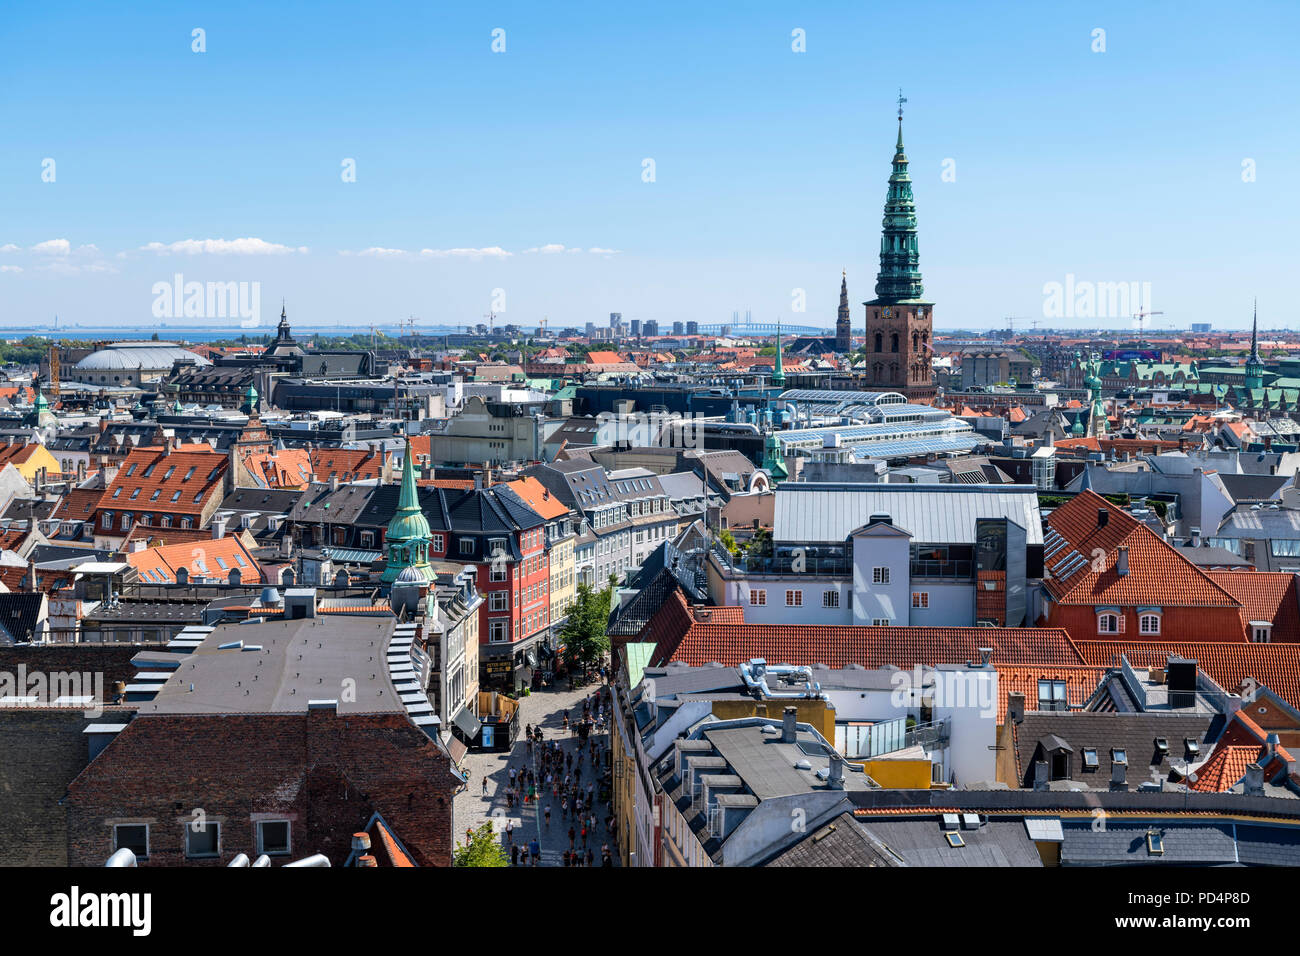 View over city from Rundetaarn (Round Tower) looking towards spire of the Nikolaj Contemporary Art Center (St Nicholas Church), Copenhagen, Denmark - Stock Image